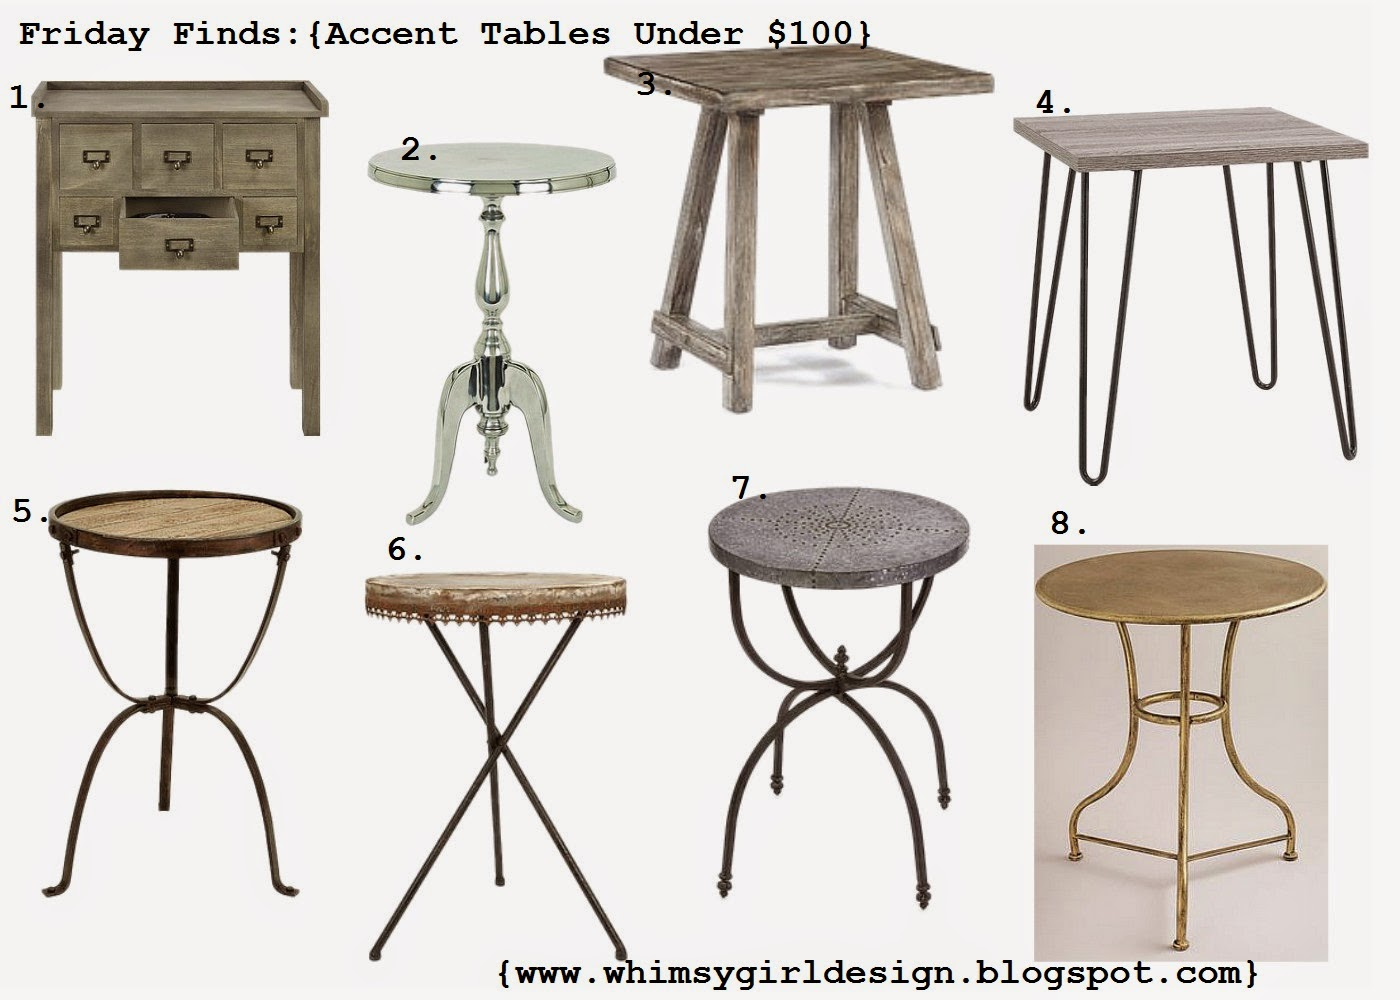 whimsy girl friday finds accent tables under obsidetable snapshot rustic metal table tiffany style lighting and accents outdoor aluminum coffee end patio umbrella razer ouroboros